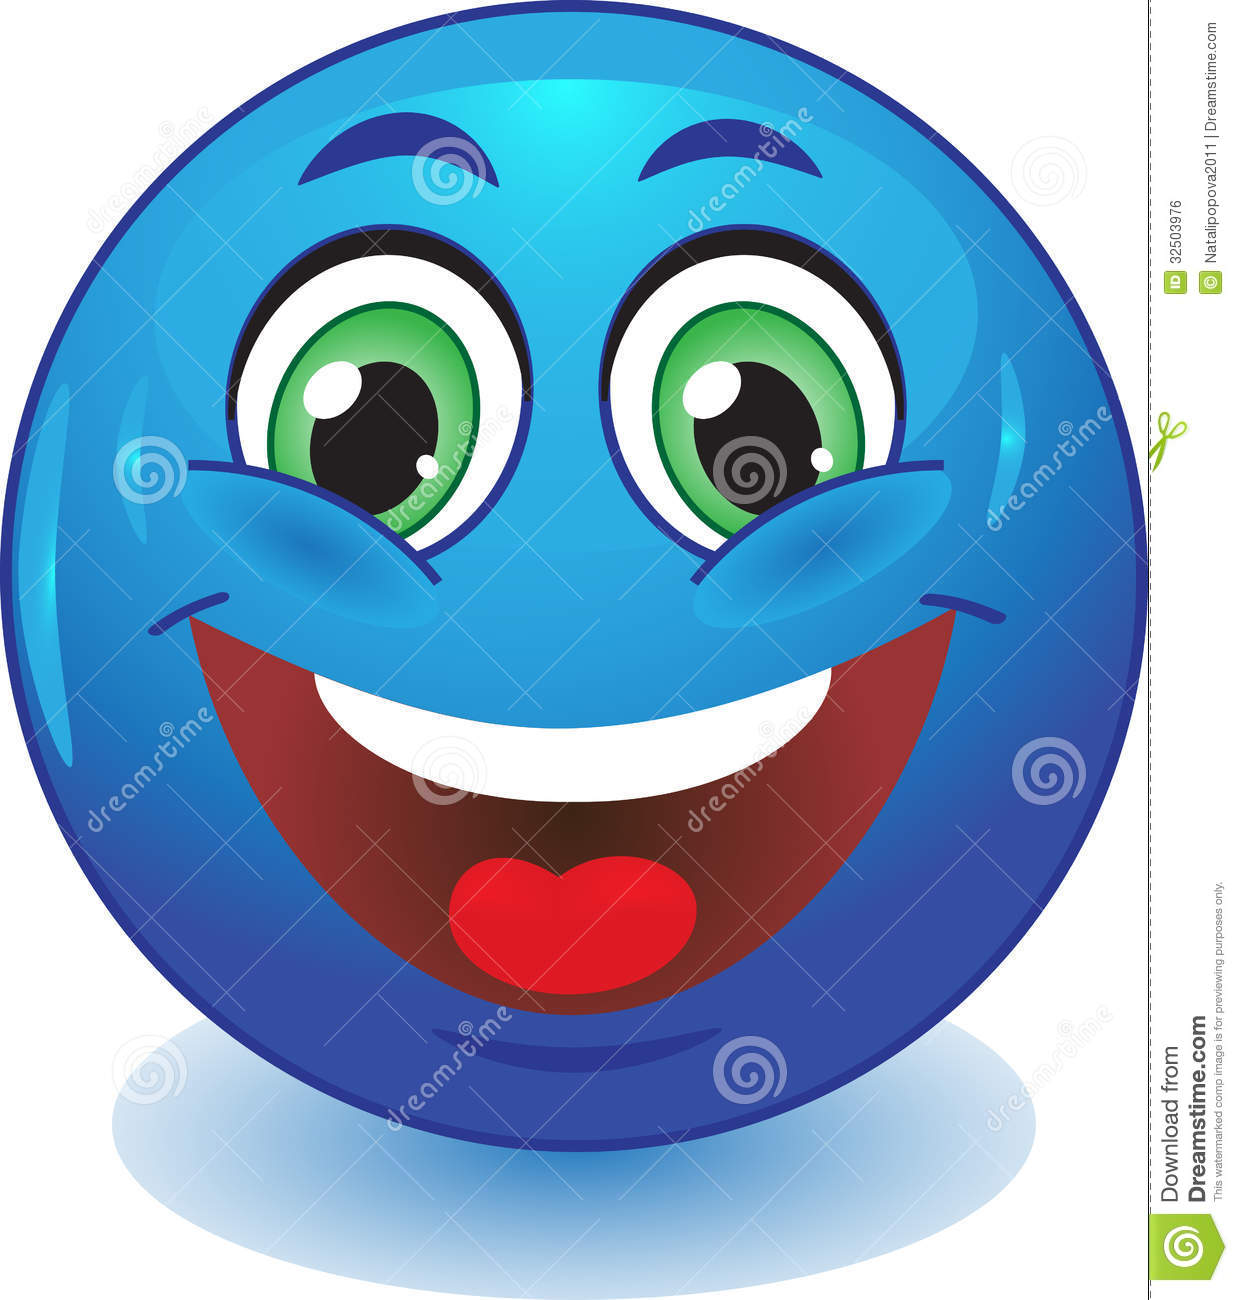 Emoticons Cute Wallpaper Blue Smiley Smiles Stock Vector Image Of Icon Emotion